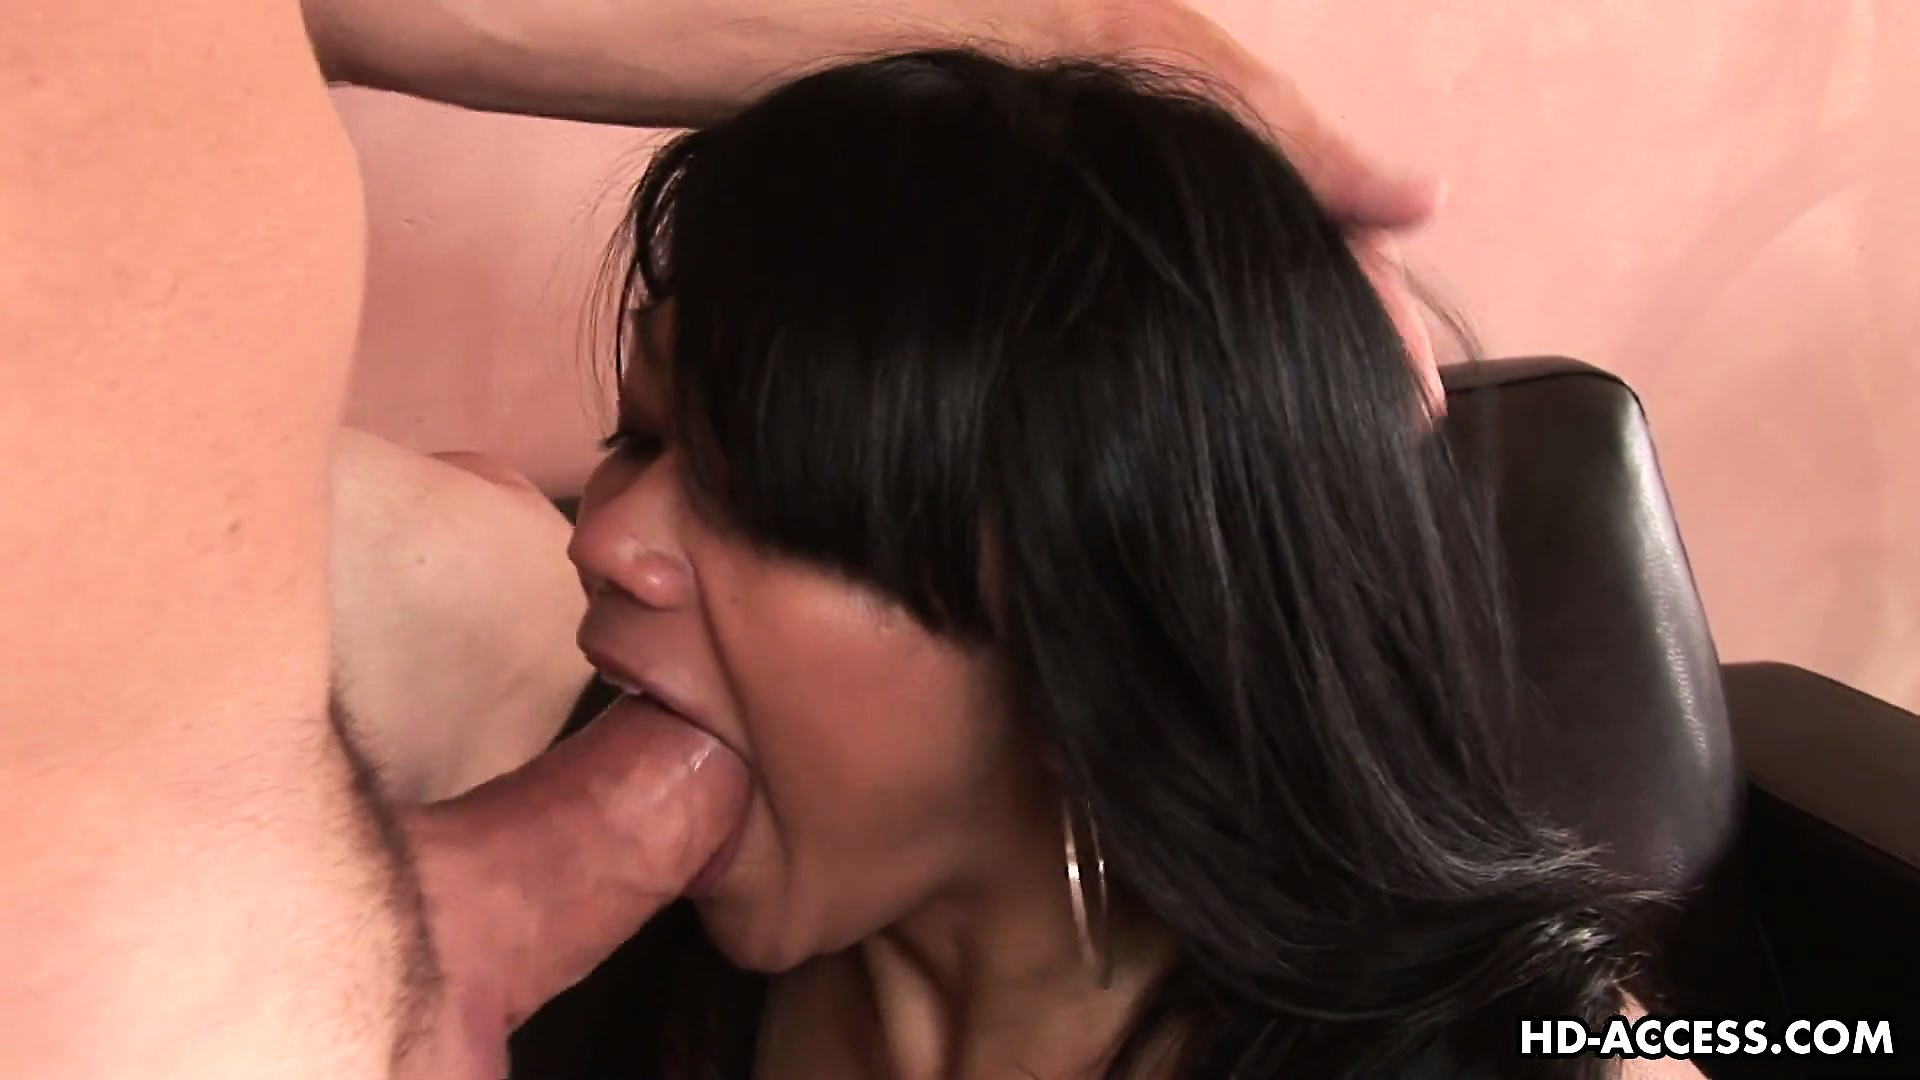 Porn Tube of Oldy-baldy Getting His Cock Serviced By A Young Asian Beauty